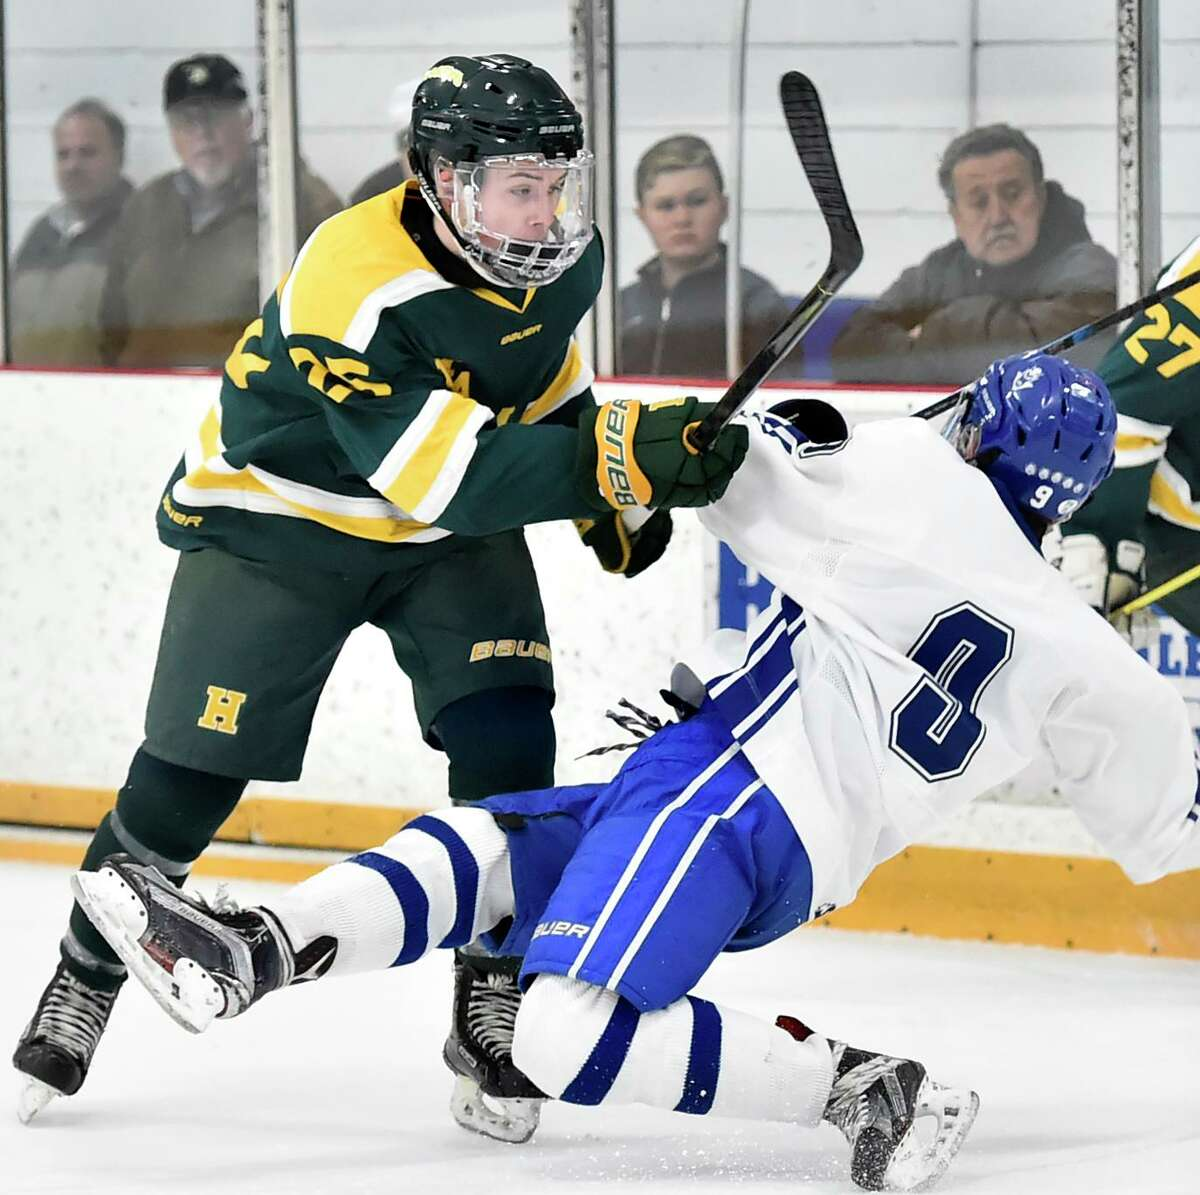 Hamden's Craig Cesare, left, and West Haven's Richie Green get physical during the first period on Wednesday at Bennett Rink in West Haven.